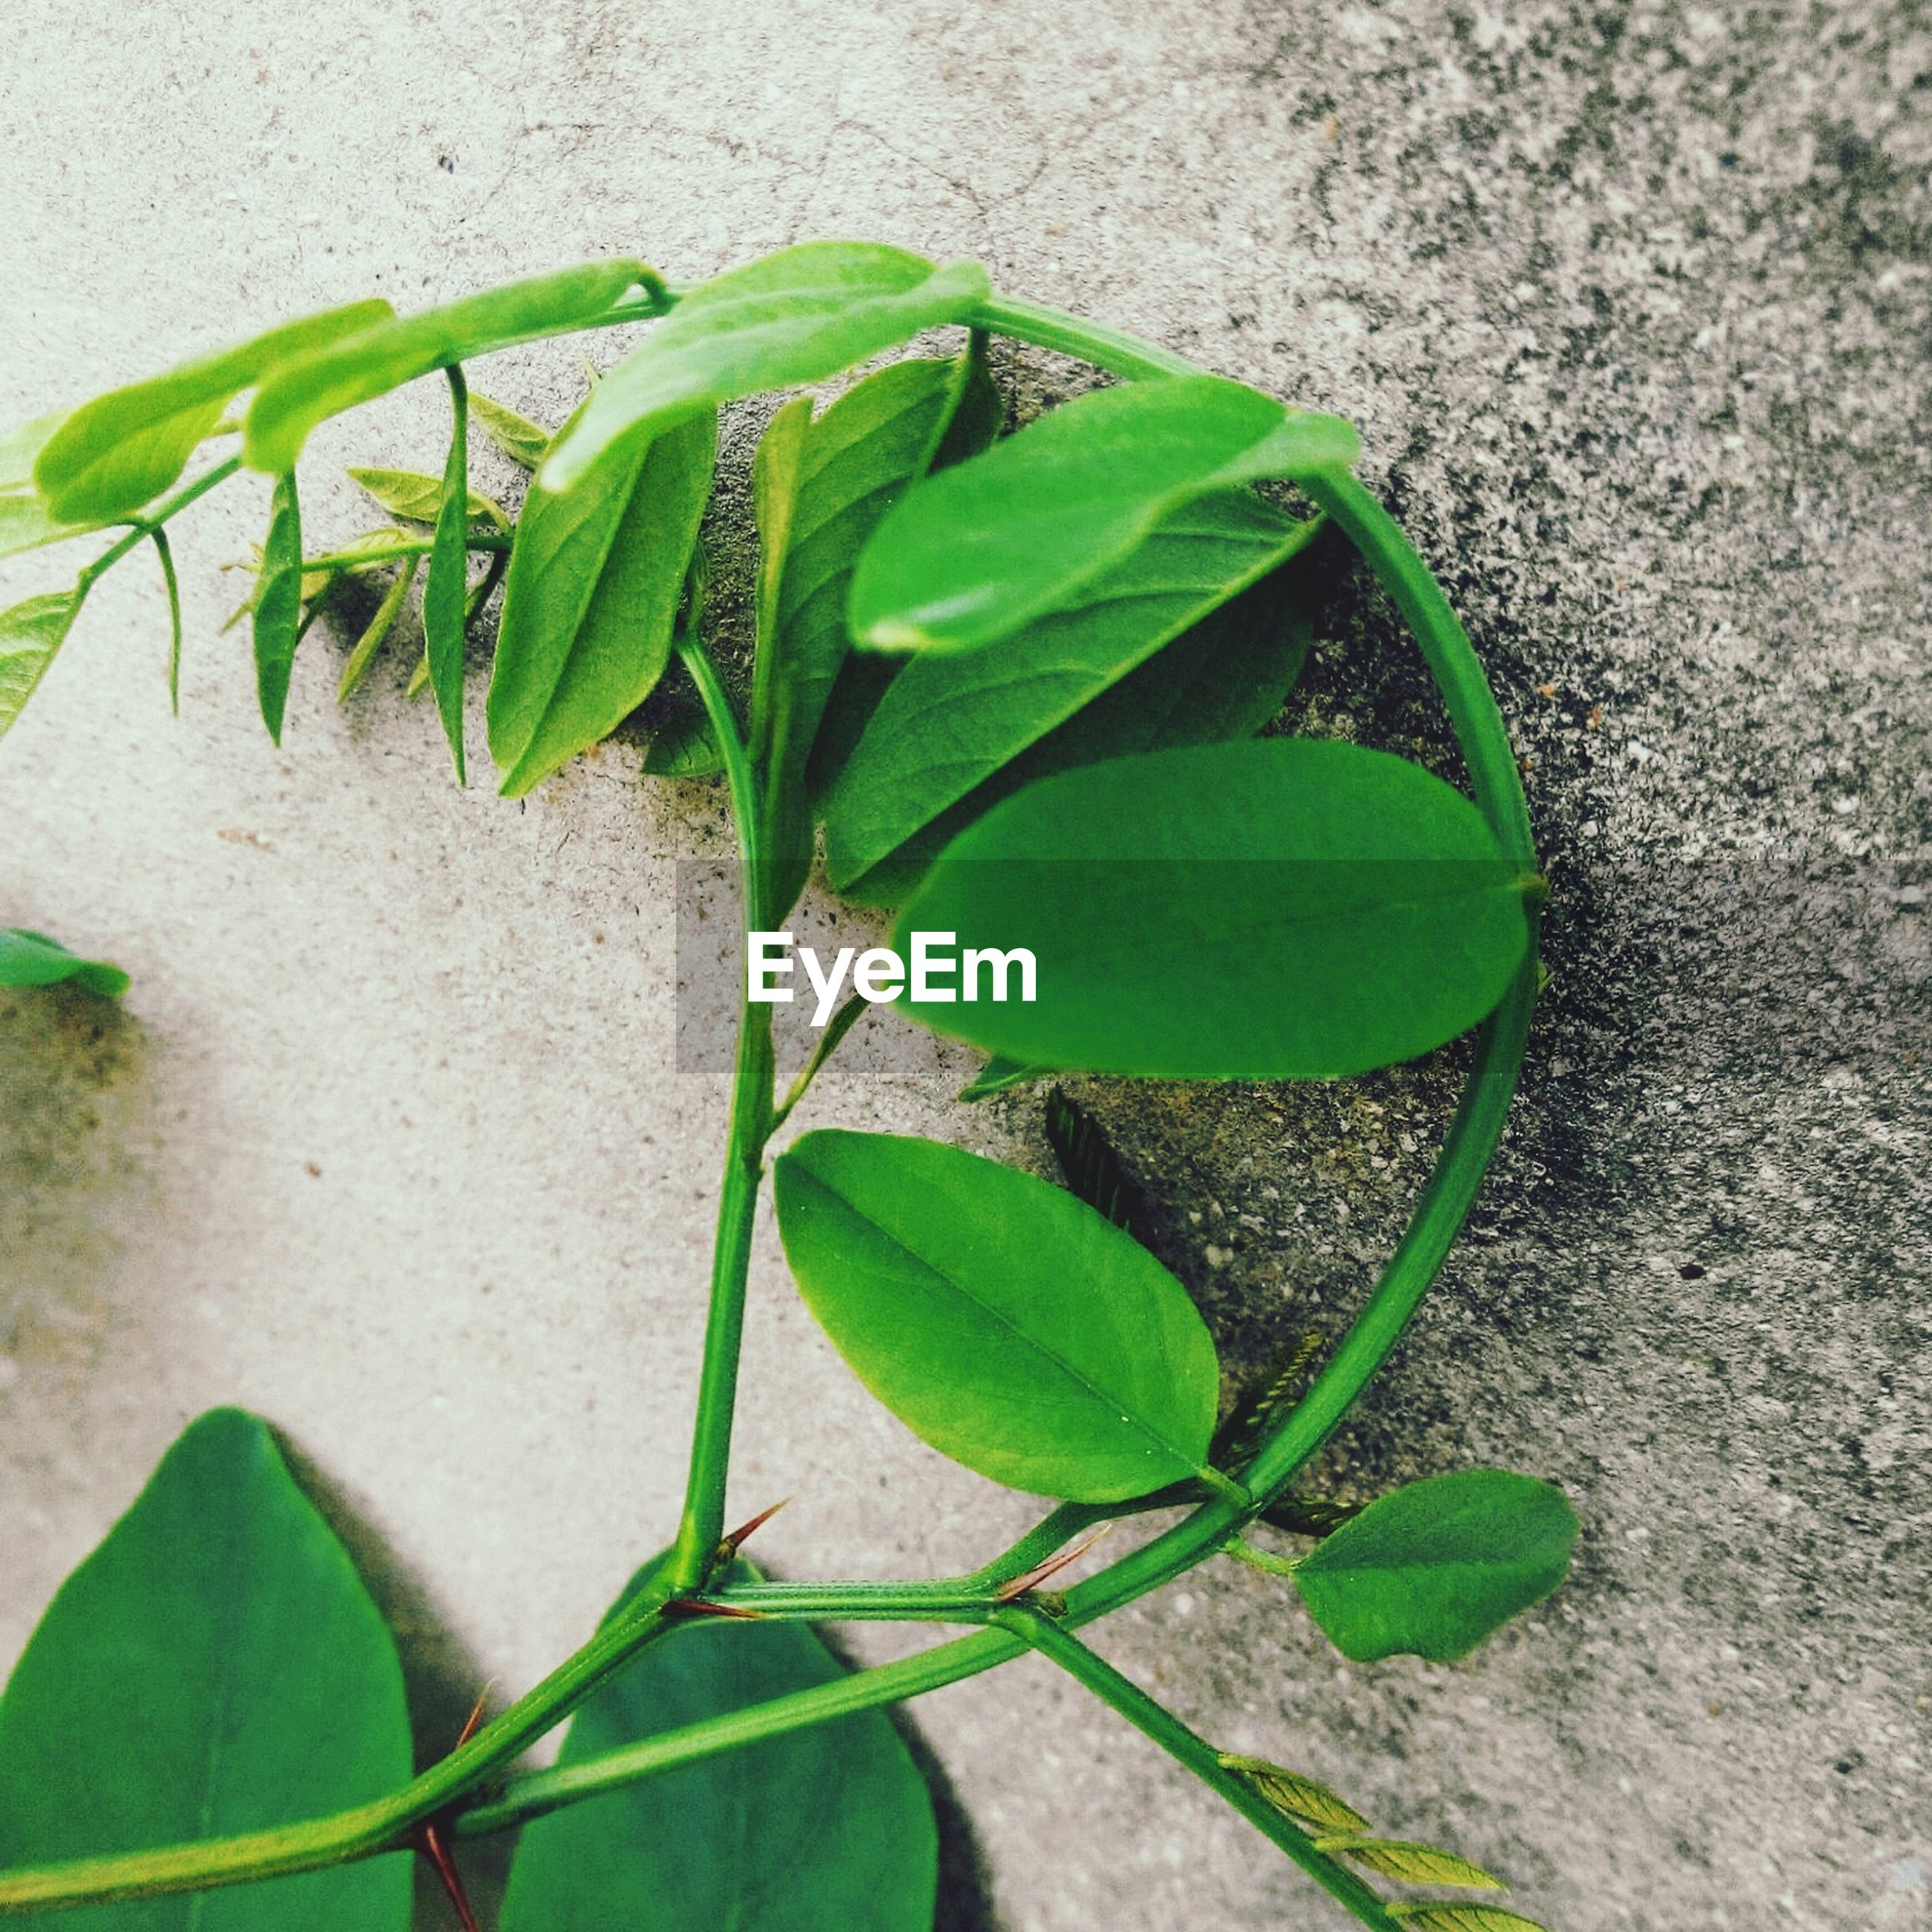 leaf, green color, growth, plant, close-up, nature, growing, green, freshness, high angle view, potted plant, no people, day, outdoors, beauty in nature, cactus, leaf vein, stem, beginnings, sunlight